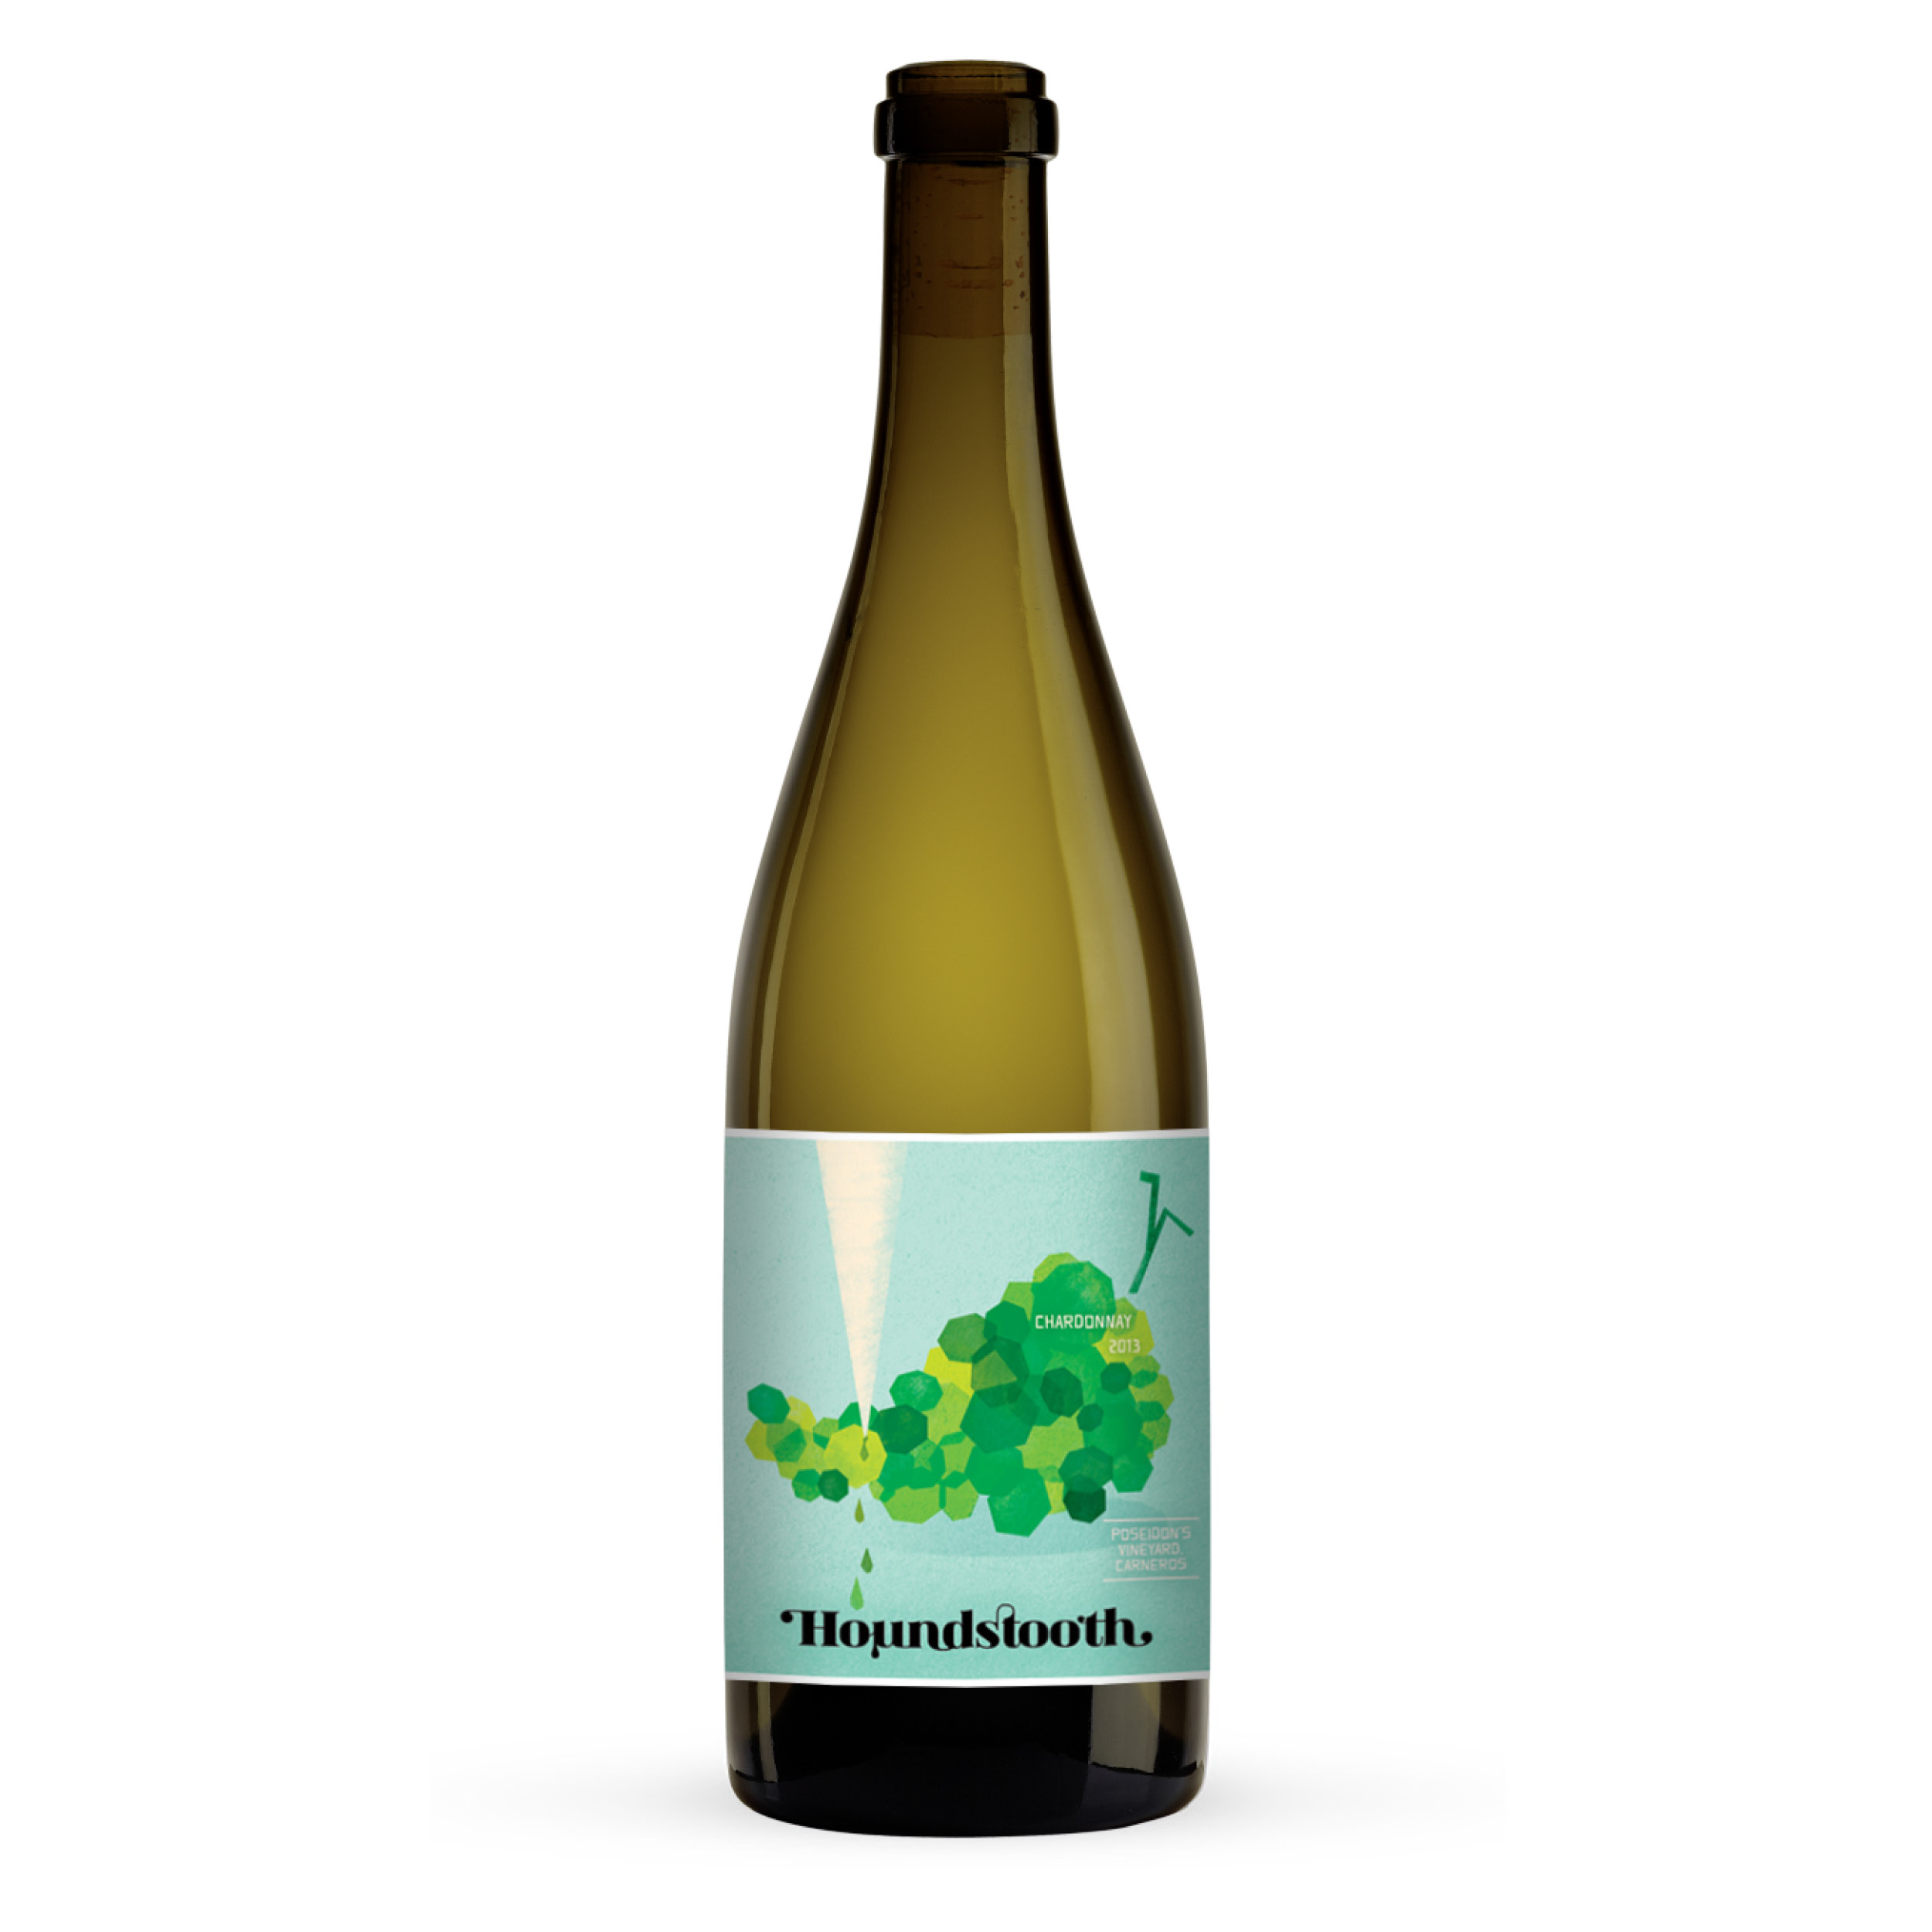 2013 Poseidon's Vineyard Chardonnay - The 2013 vintage was wound up for a long time, but is just hitting its stride now. This wine offers a nose of golden apples, sea foam, and marzipan. On the palate it is broad and long, with just enough acidity to keep the wine moving. It aged for 18 months in neutral French oak barrels. 50 cases produced.$35